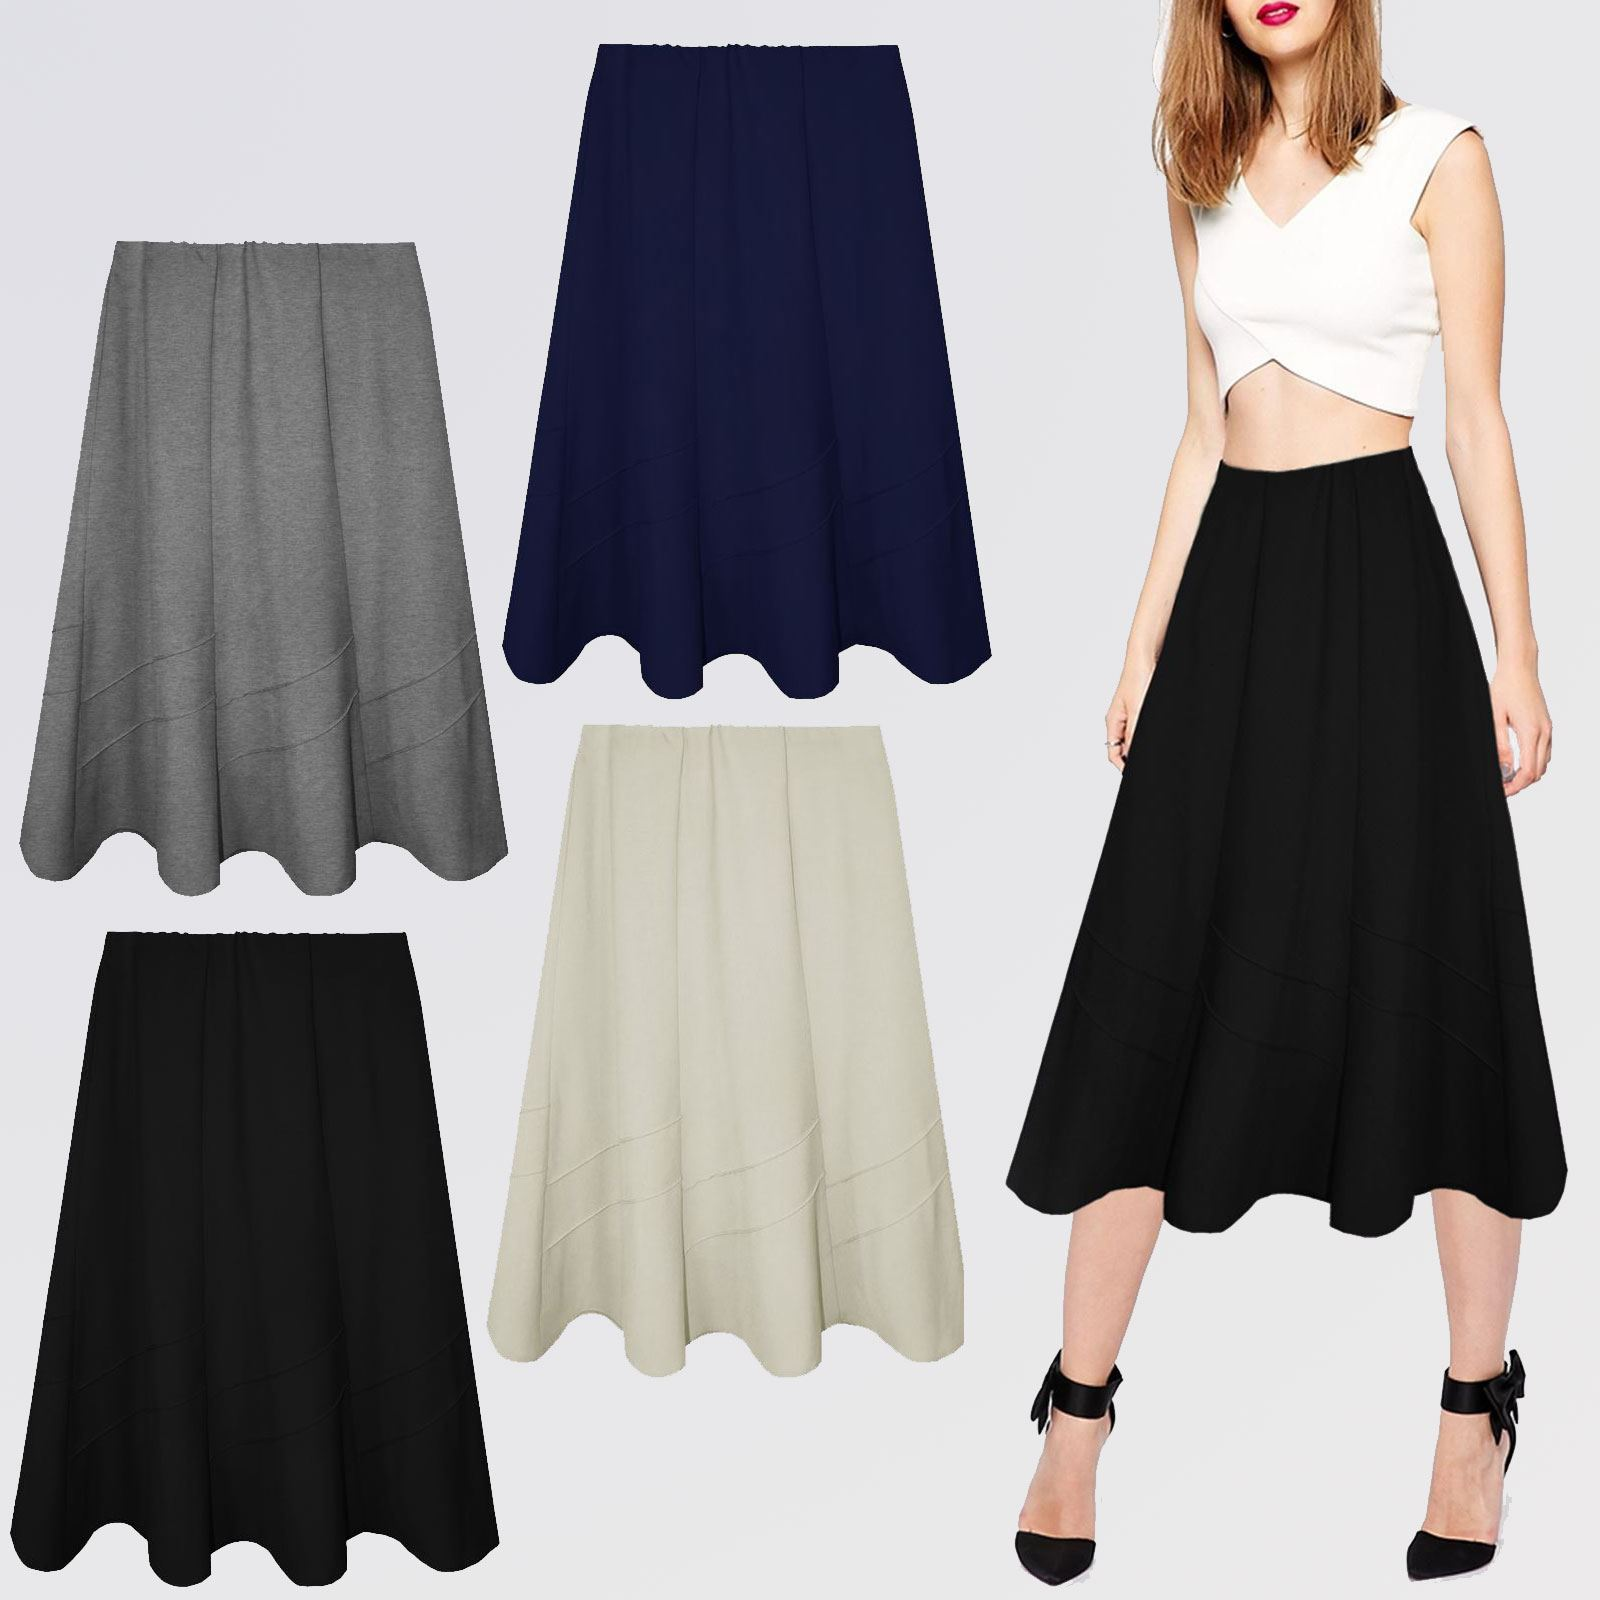 6734ee95ca Details about WOMENS LADIES MID LENGTH SKIRTS ELASTICATED FLARED FANCY  DRESS SKATER LONG SWING